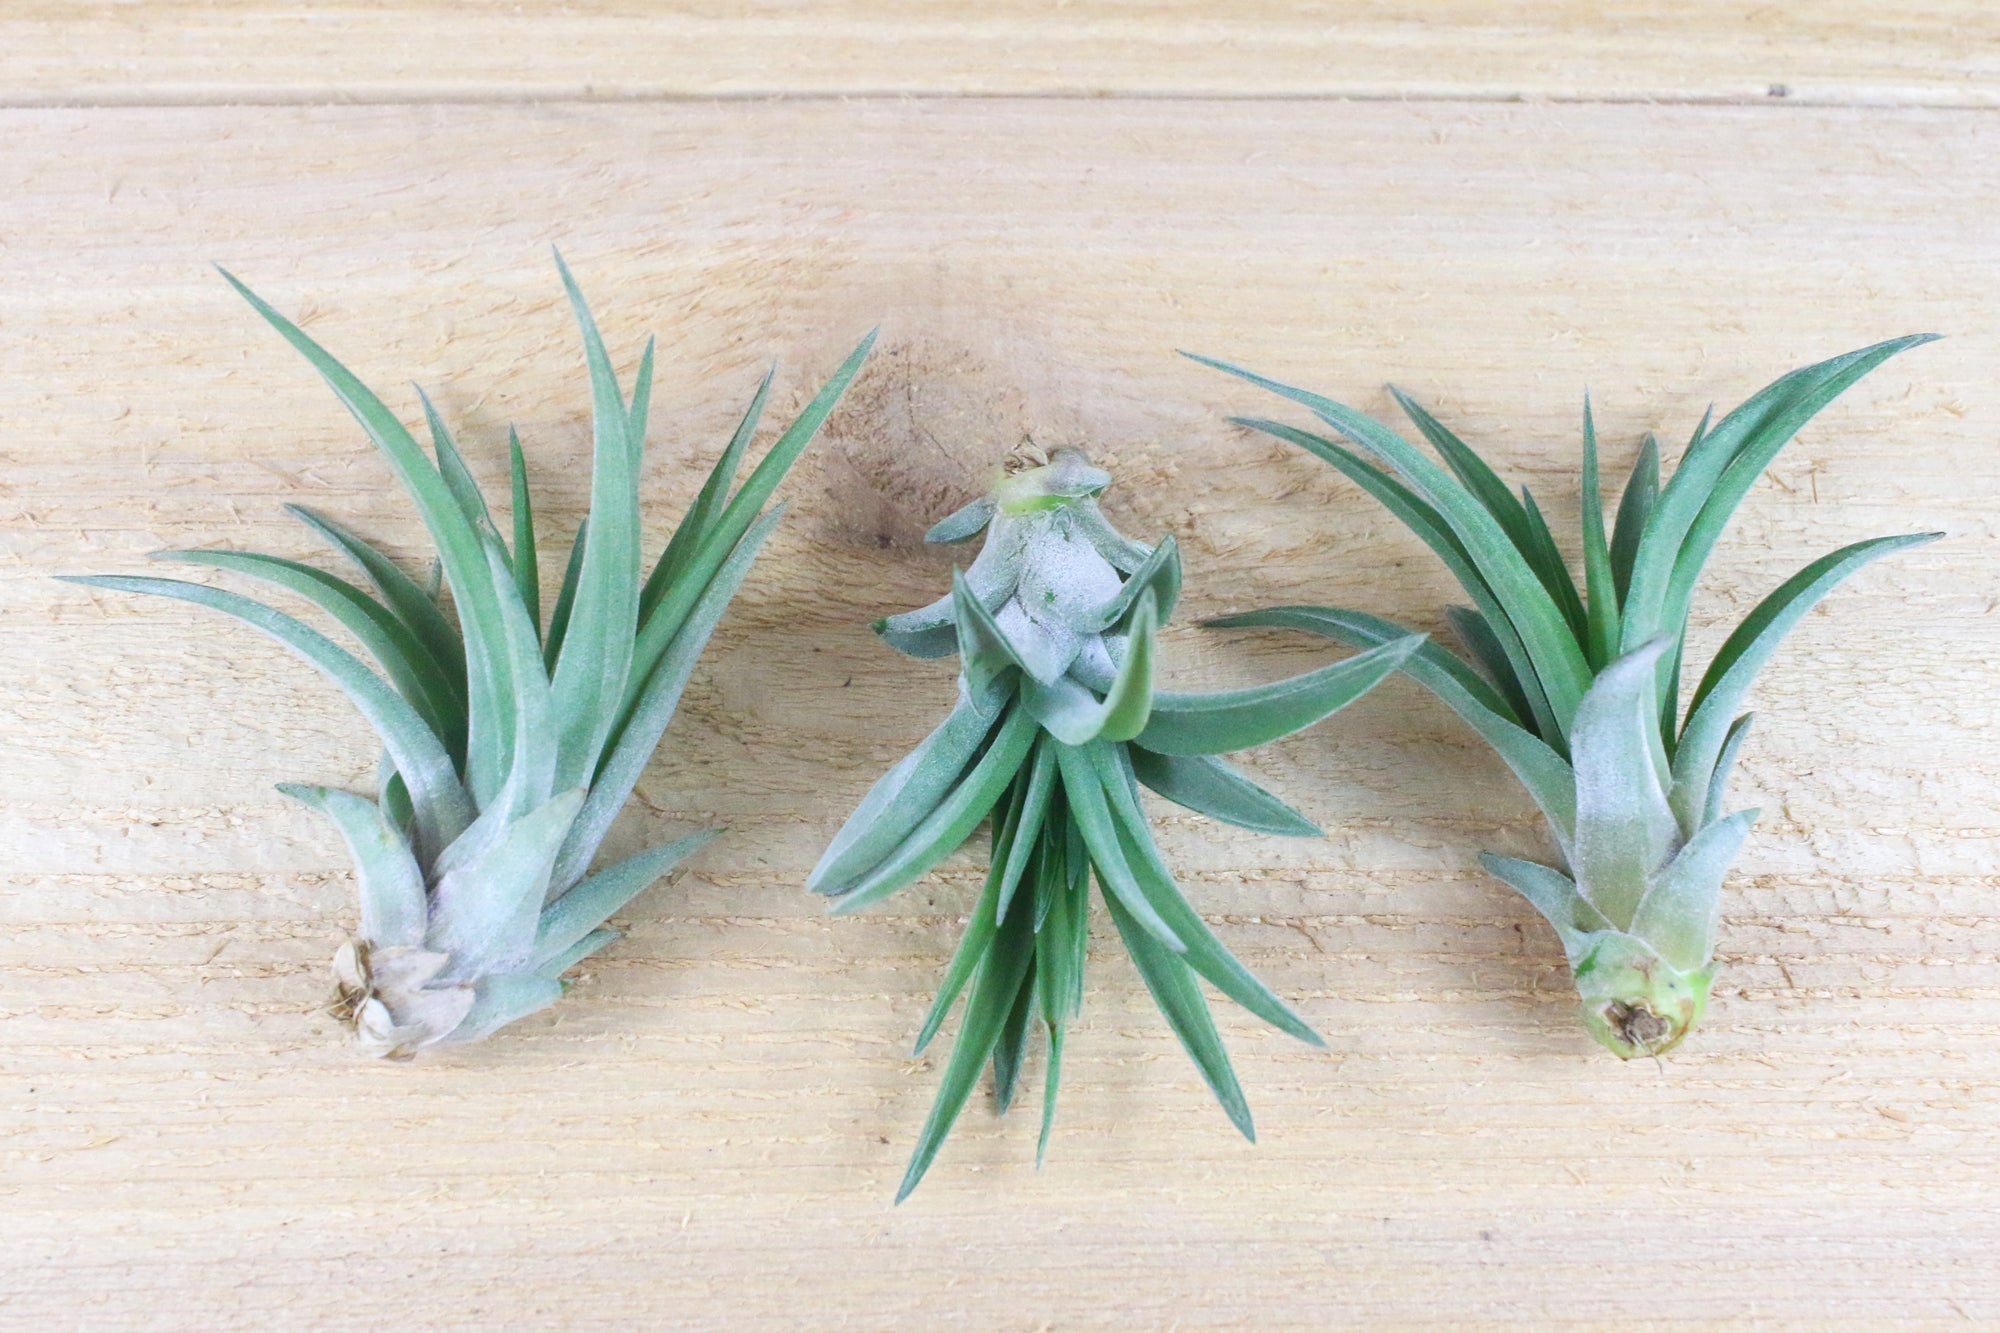 Wholesale: Tillandsia Velutina Air Plants [Min Order 12] from AirPlantShop.com